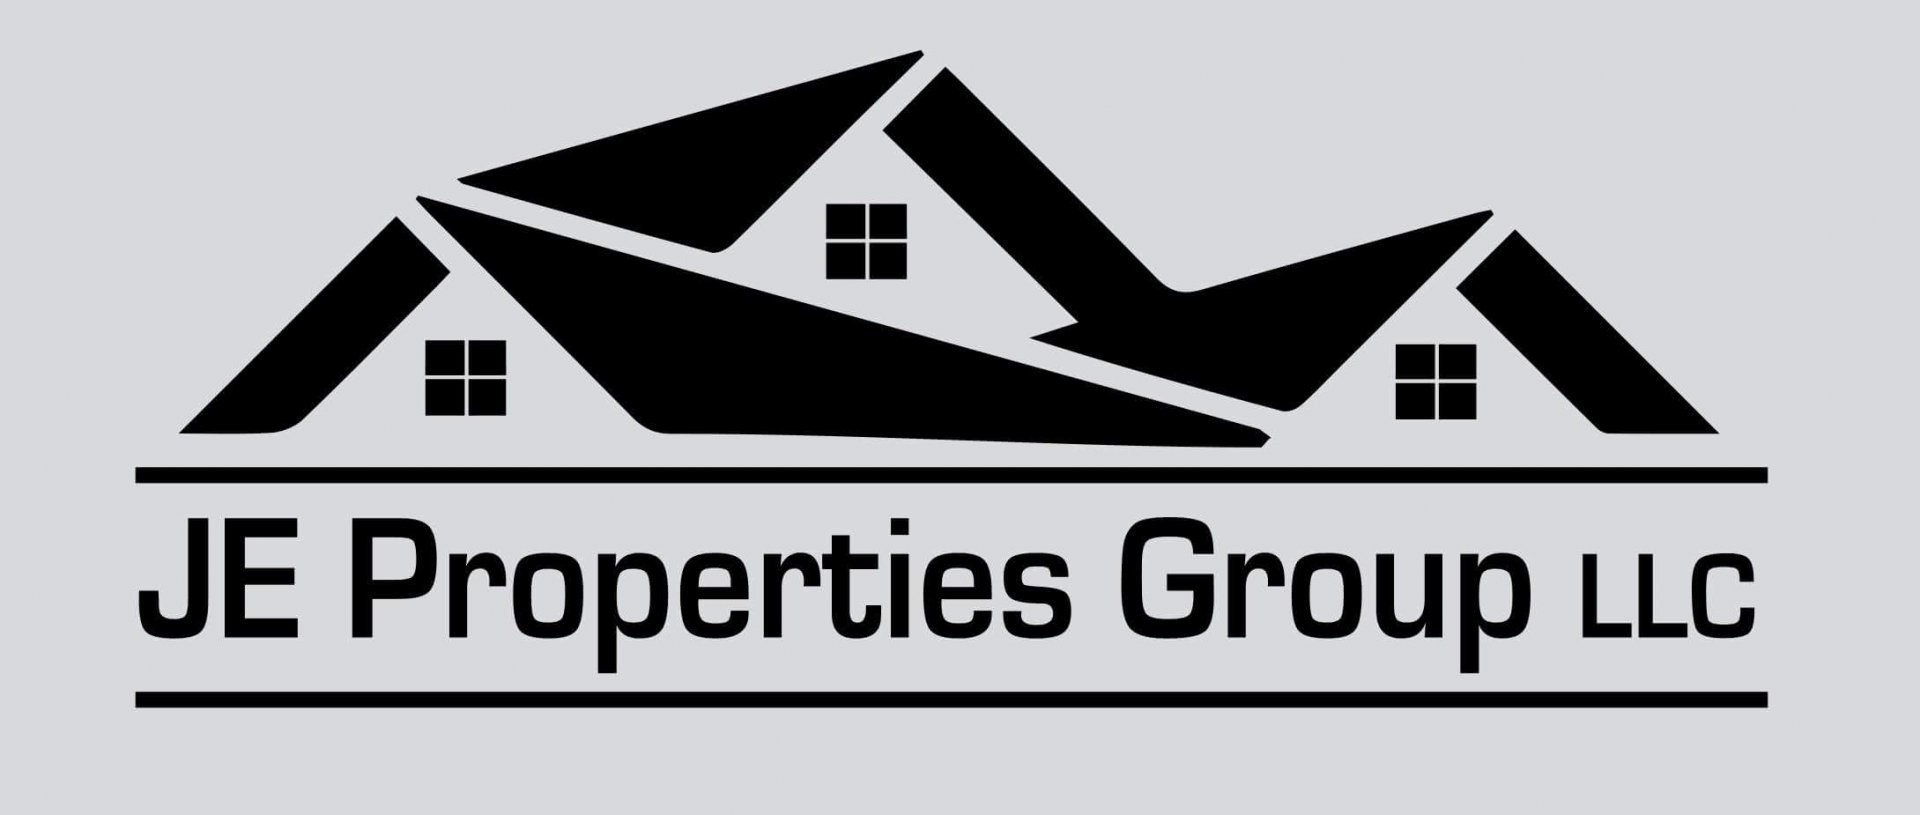 JE Properties Group, LLC  logo